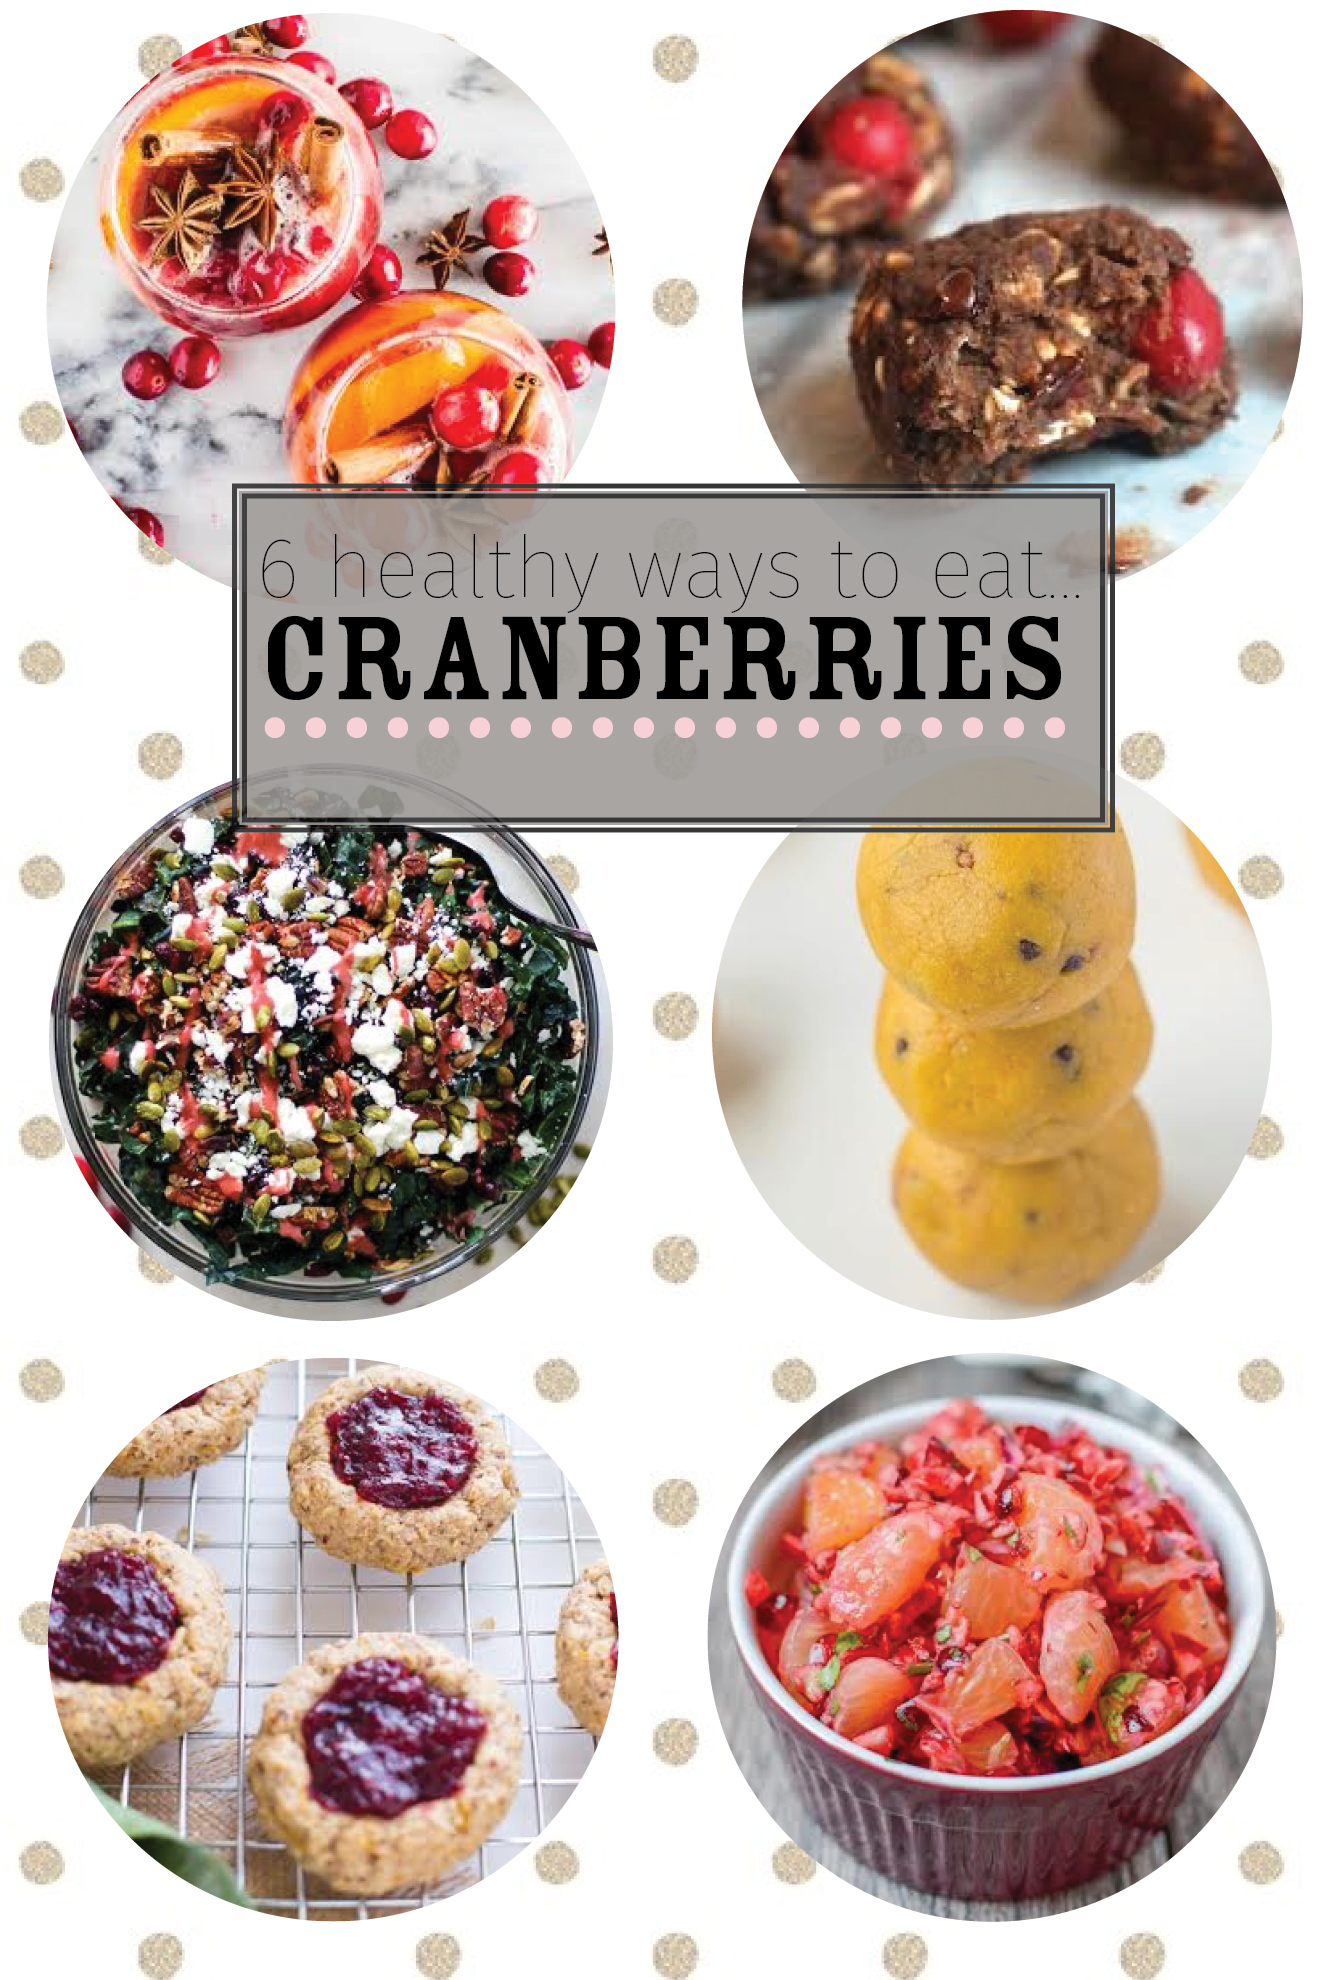 6 Healthy Ways to Cook with Cranberries